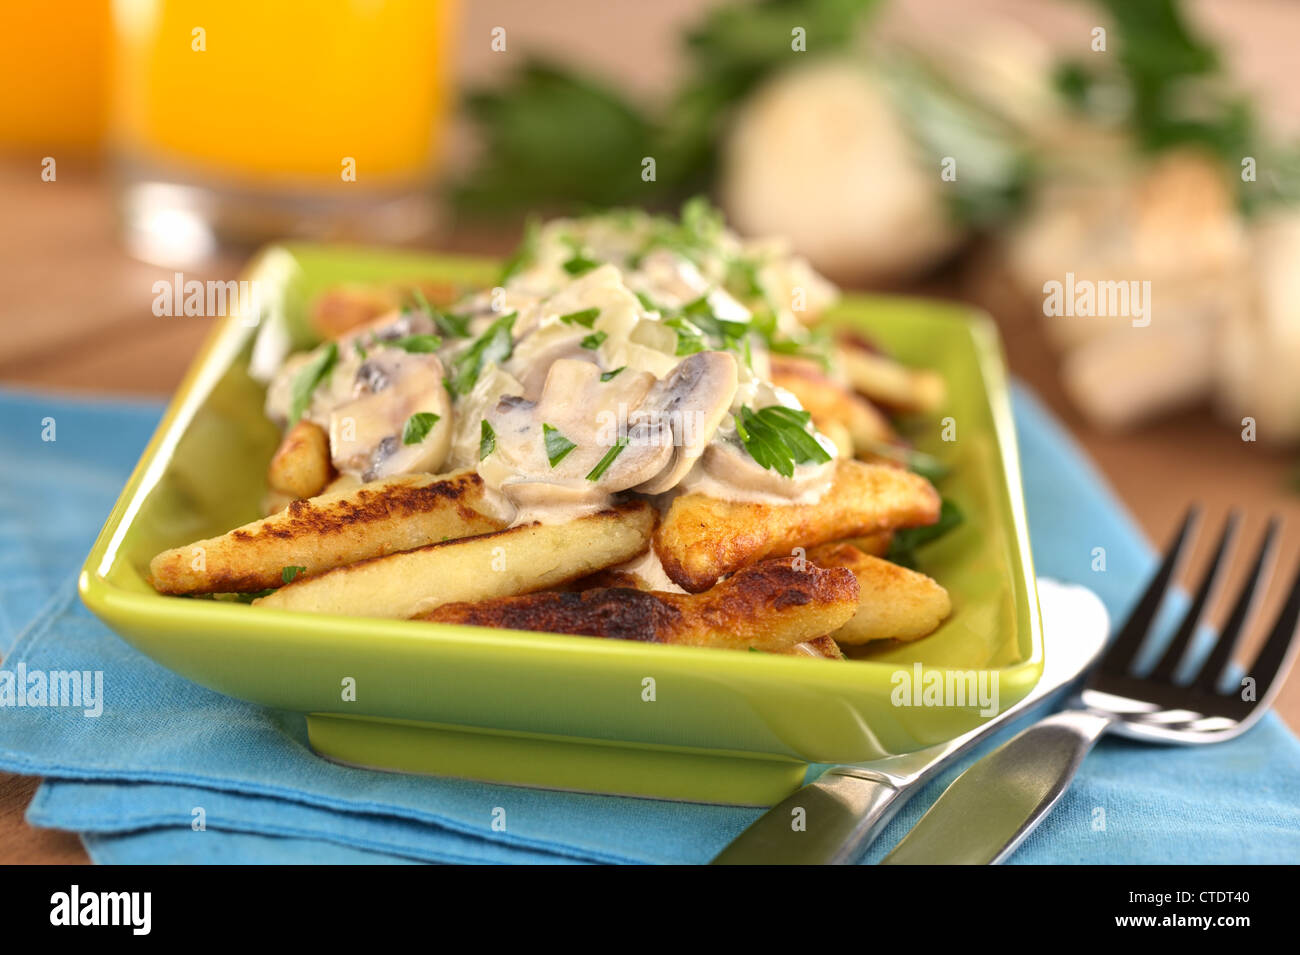 Schupfnudeln (Swabian potato noodles from Southern Germany) with mushroom sauce - Stock Image